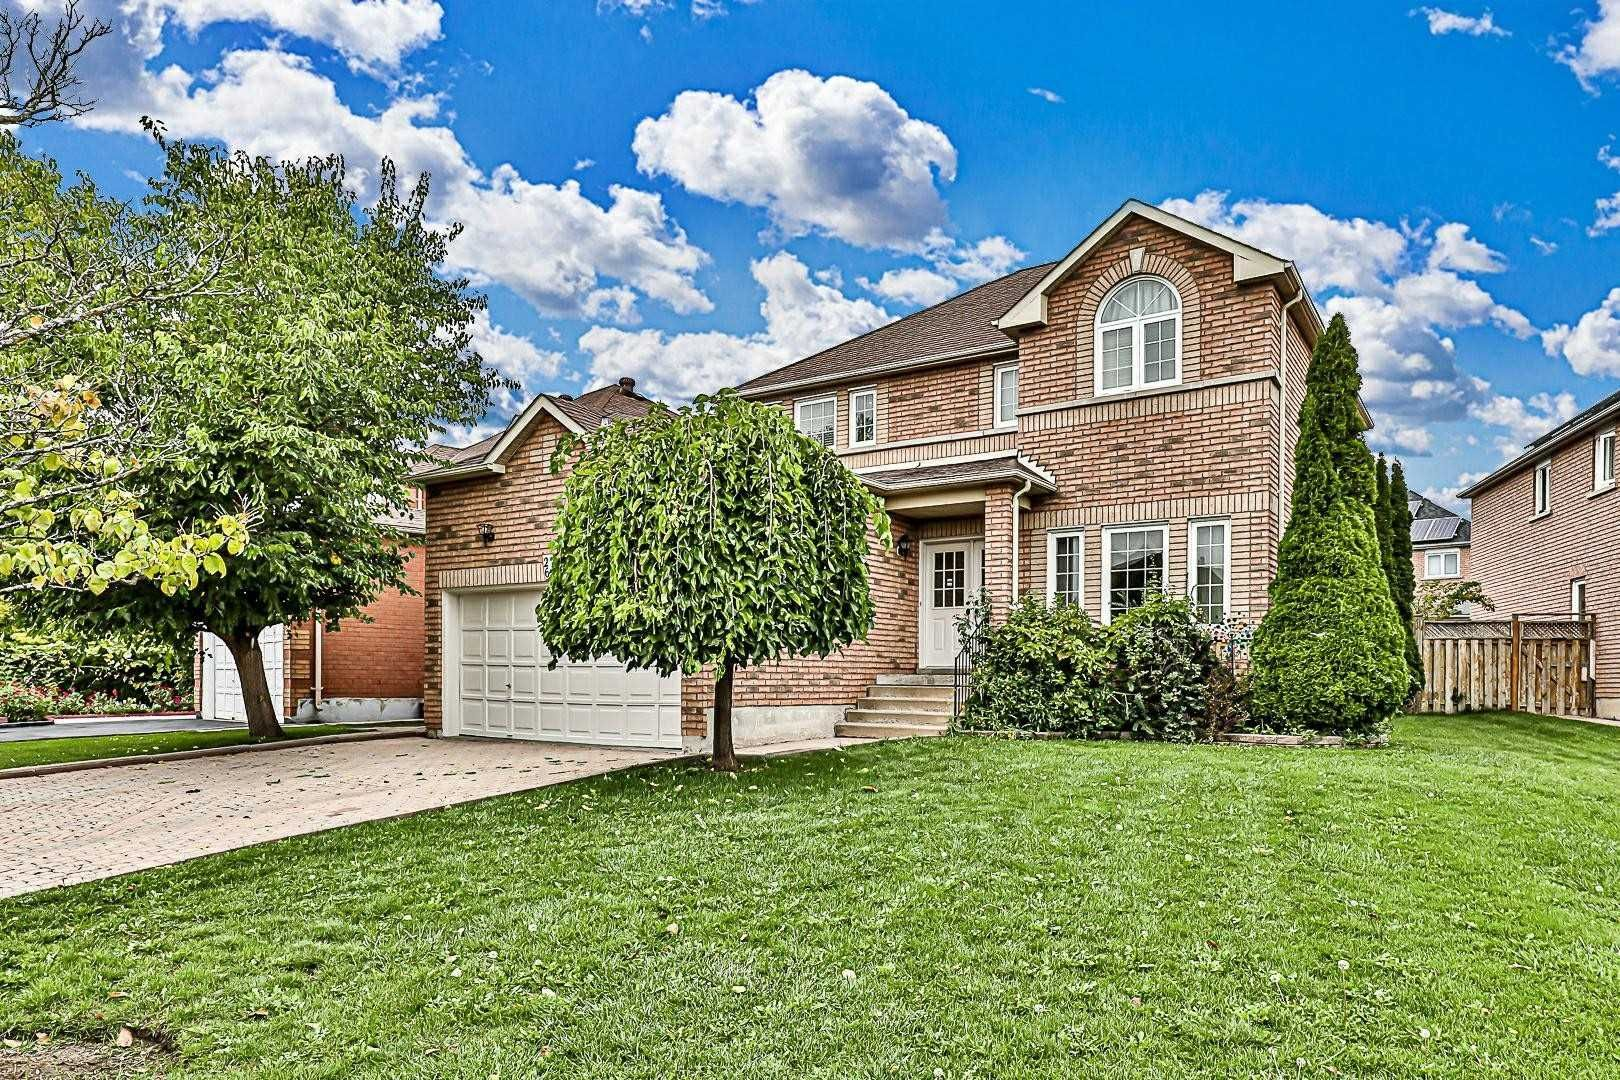 Main Photo: 26 Beulah Drive in Markham: Middlefield House (2-Storey) for sale : MLS®# N5394550